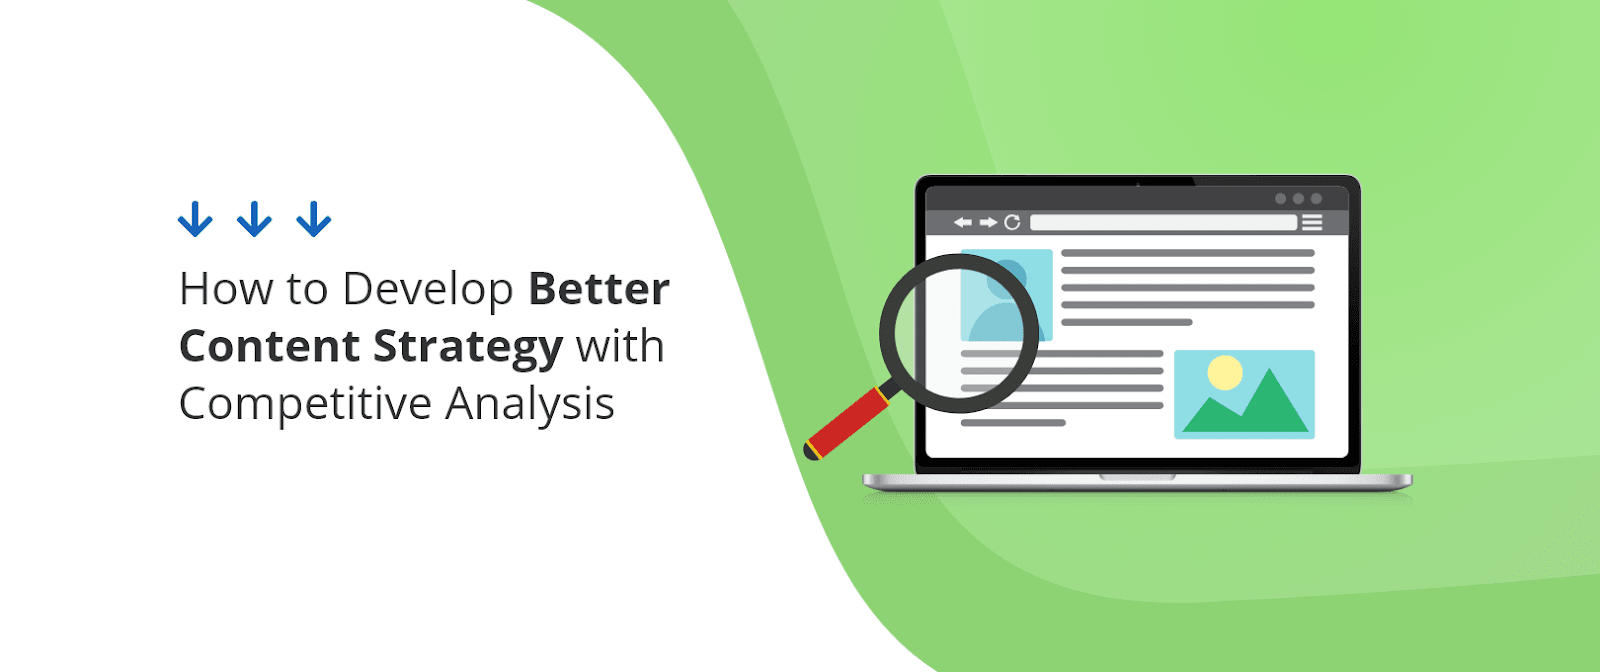 Content Strategy Content Analysis